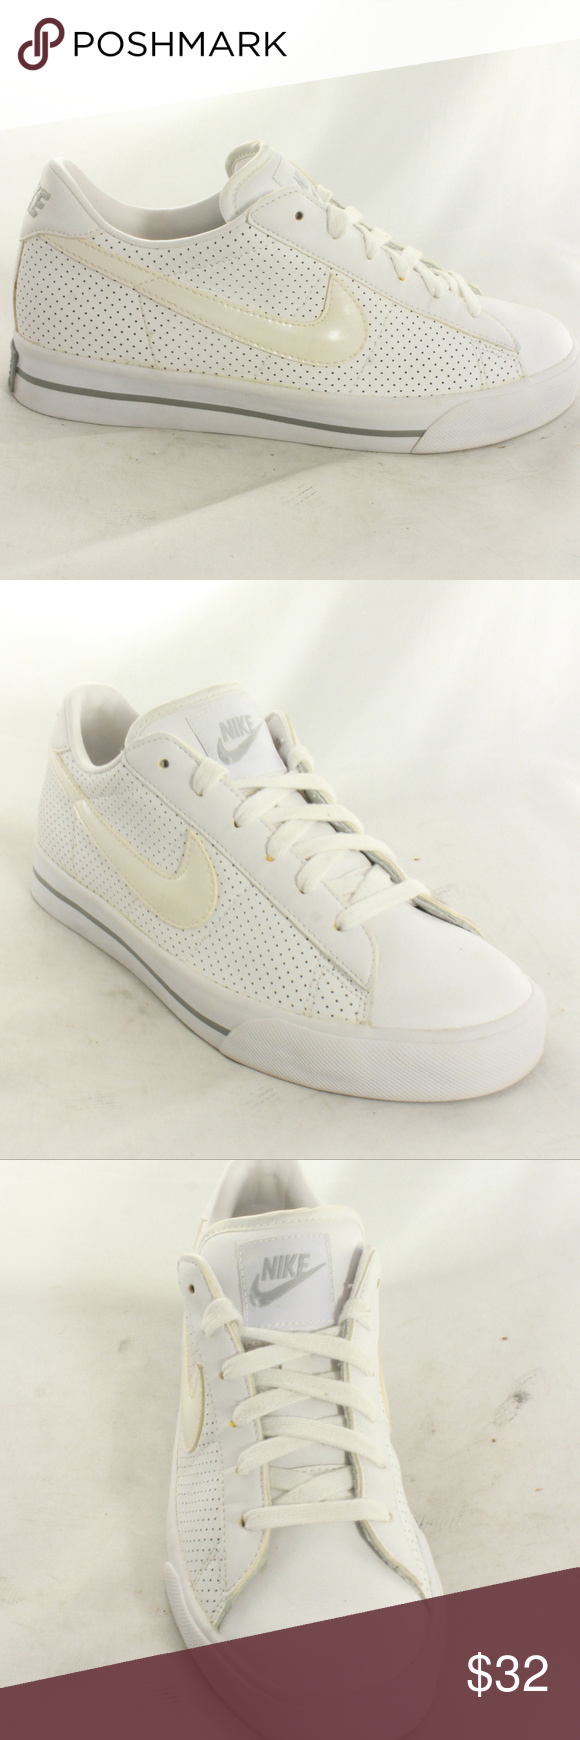 Nike Sweet Classic Leather White Gray Sneakers Classic silhouette sneakers.  Clean inside and out. f33992975